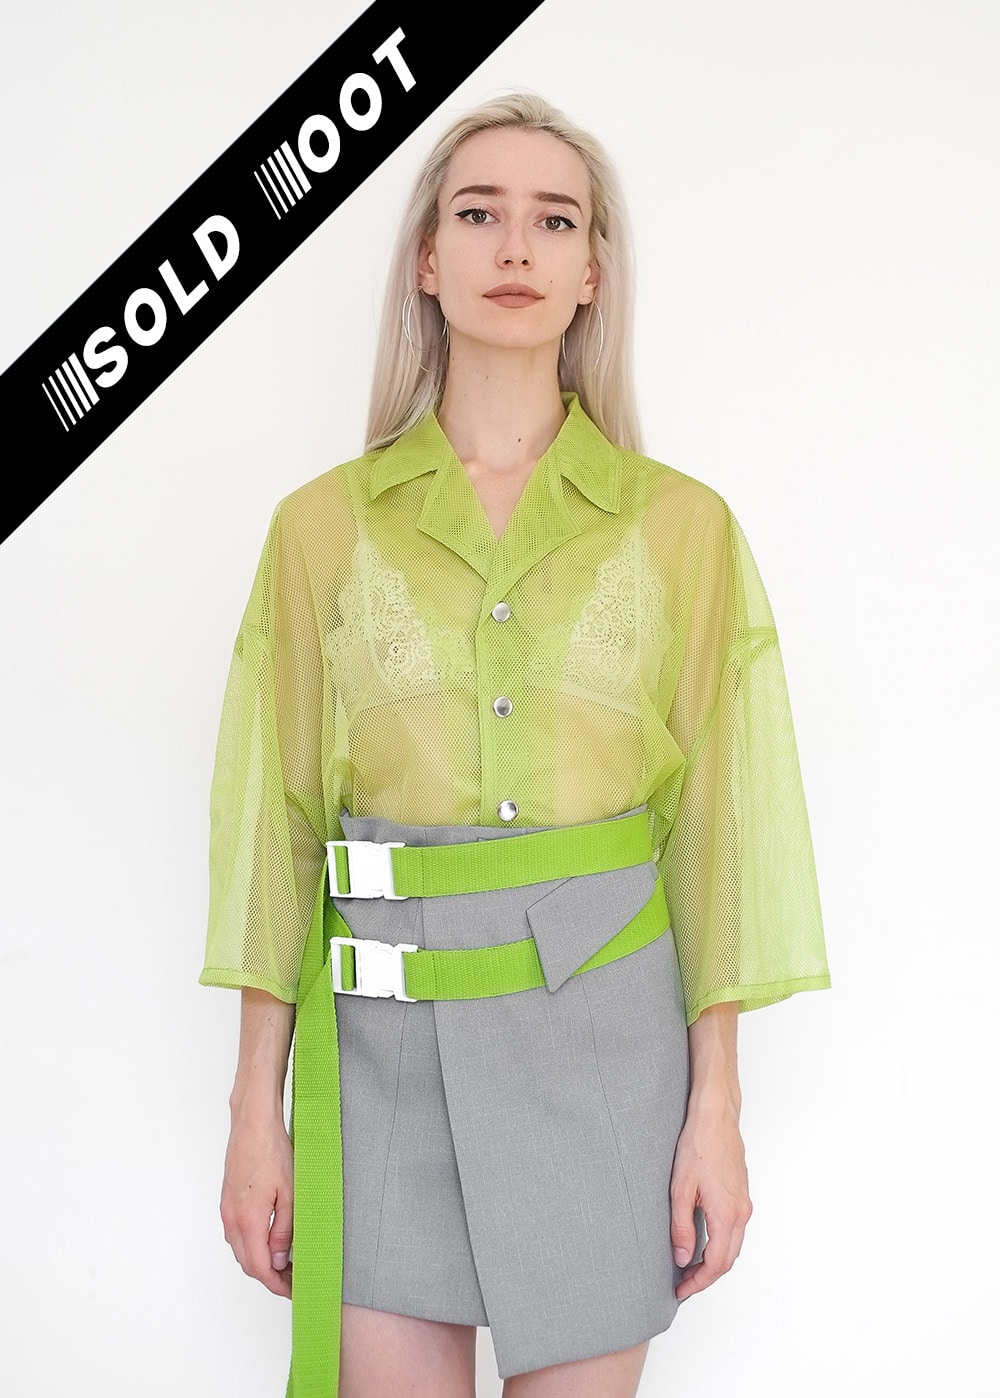 LIMITED ED Green Mesh Shirt 356